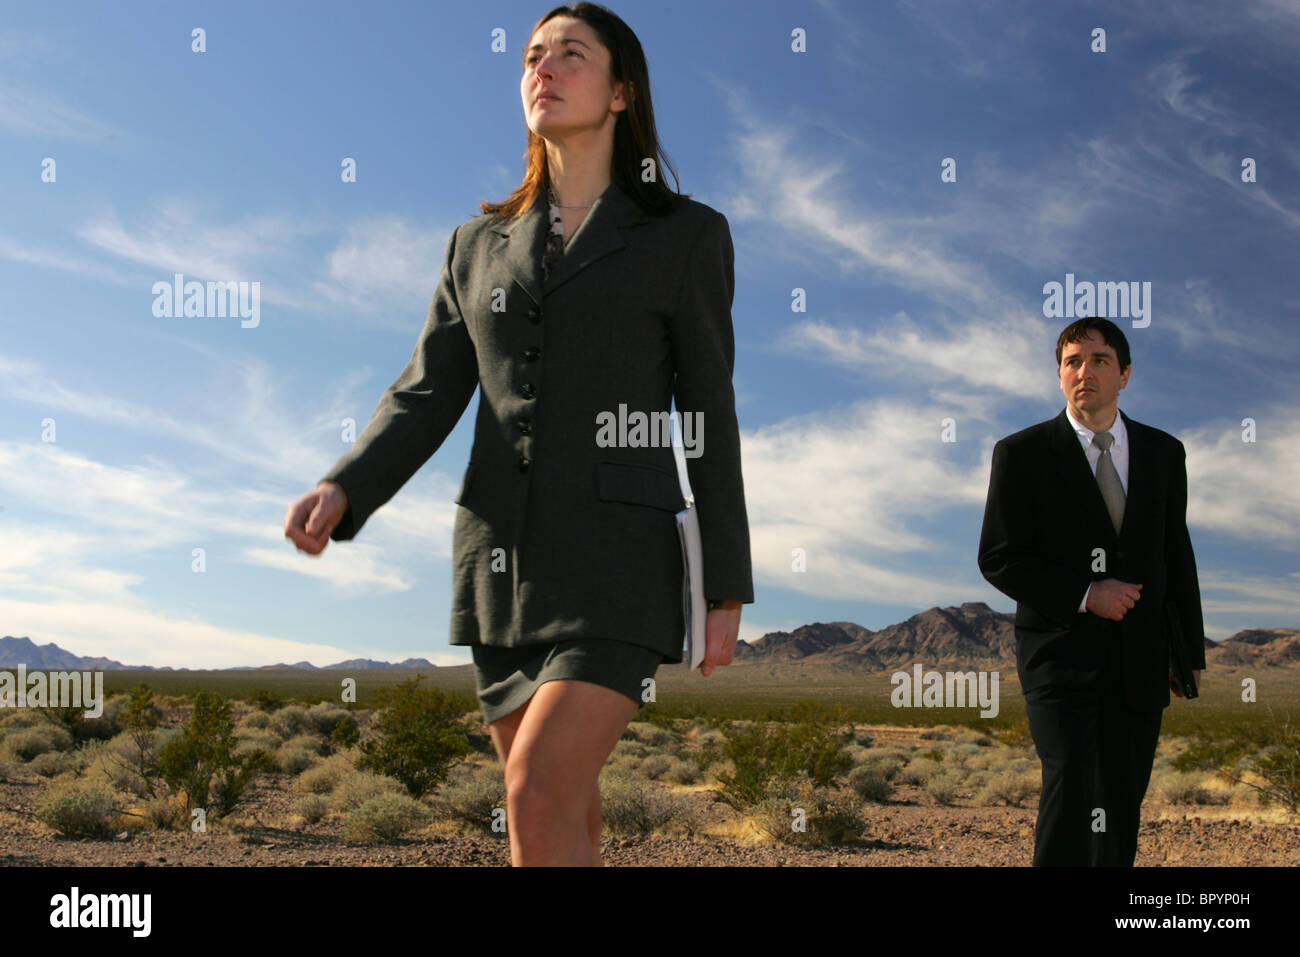 Two business coworkers in the desert, Death Valley, California. - Stock Image